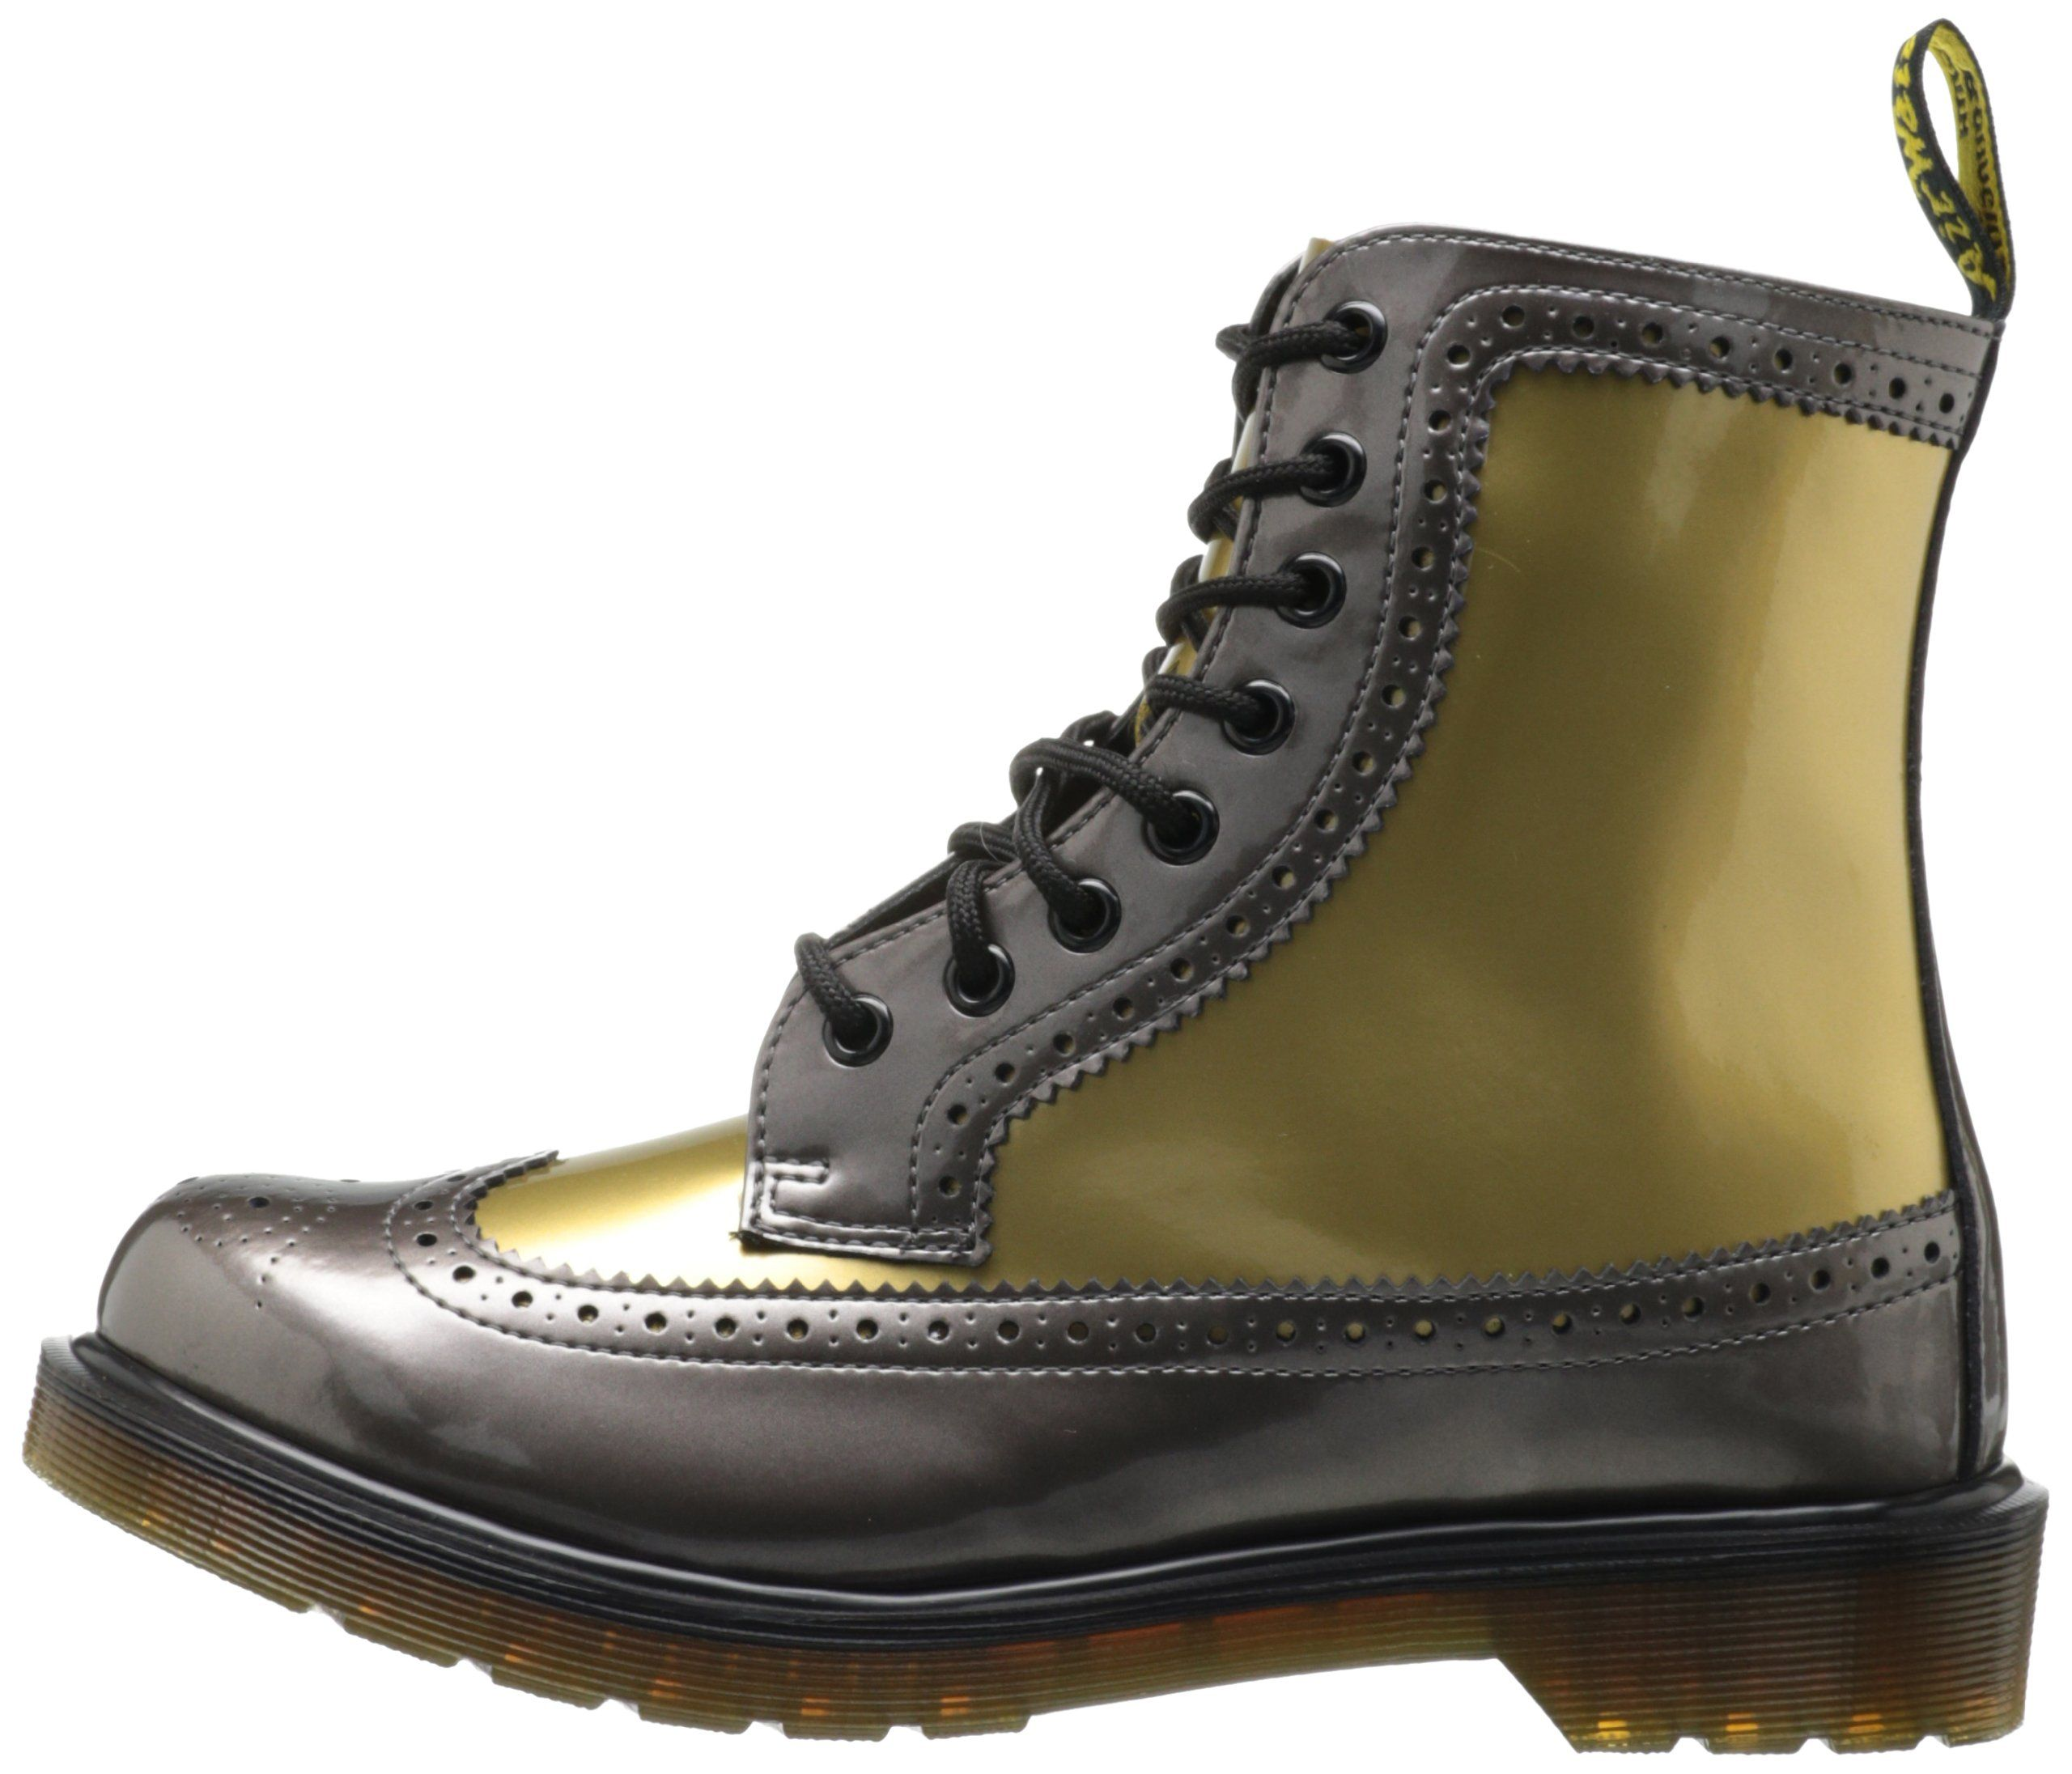 Dr martens harrie brogue boot pewter gold spectra patent +